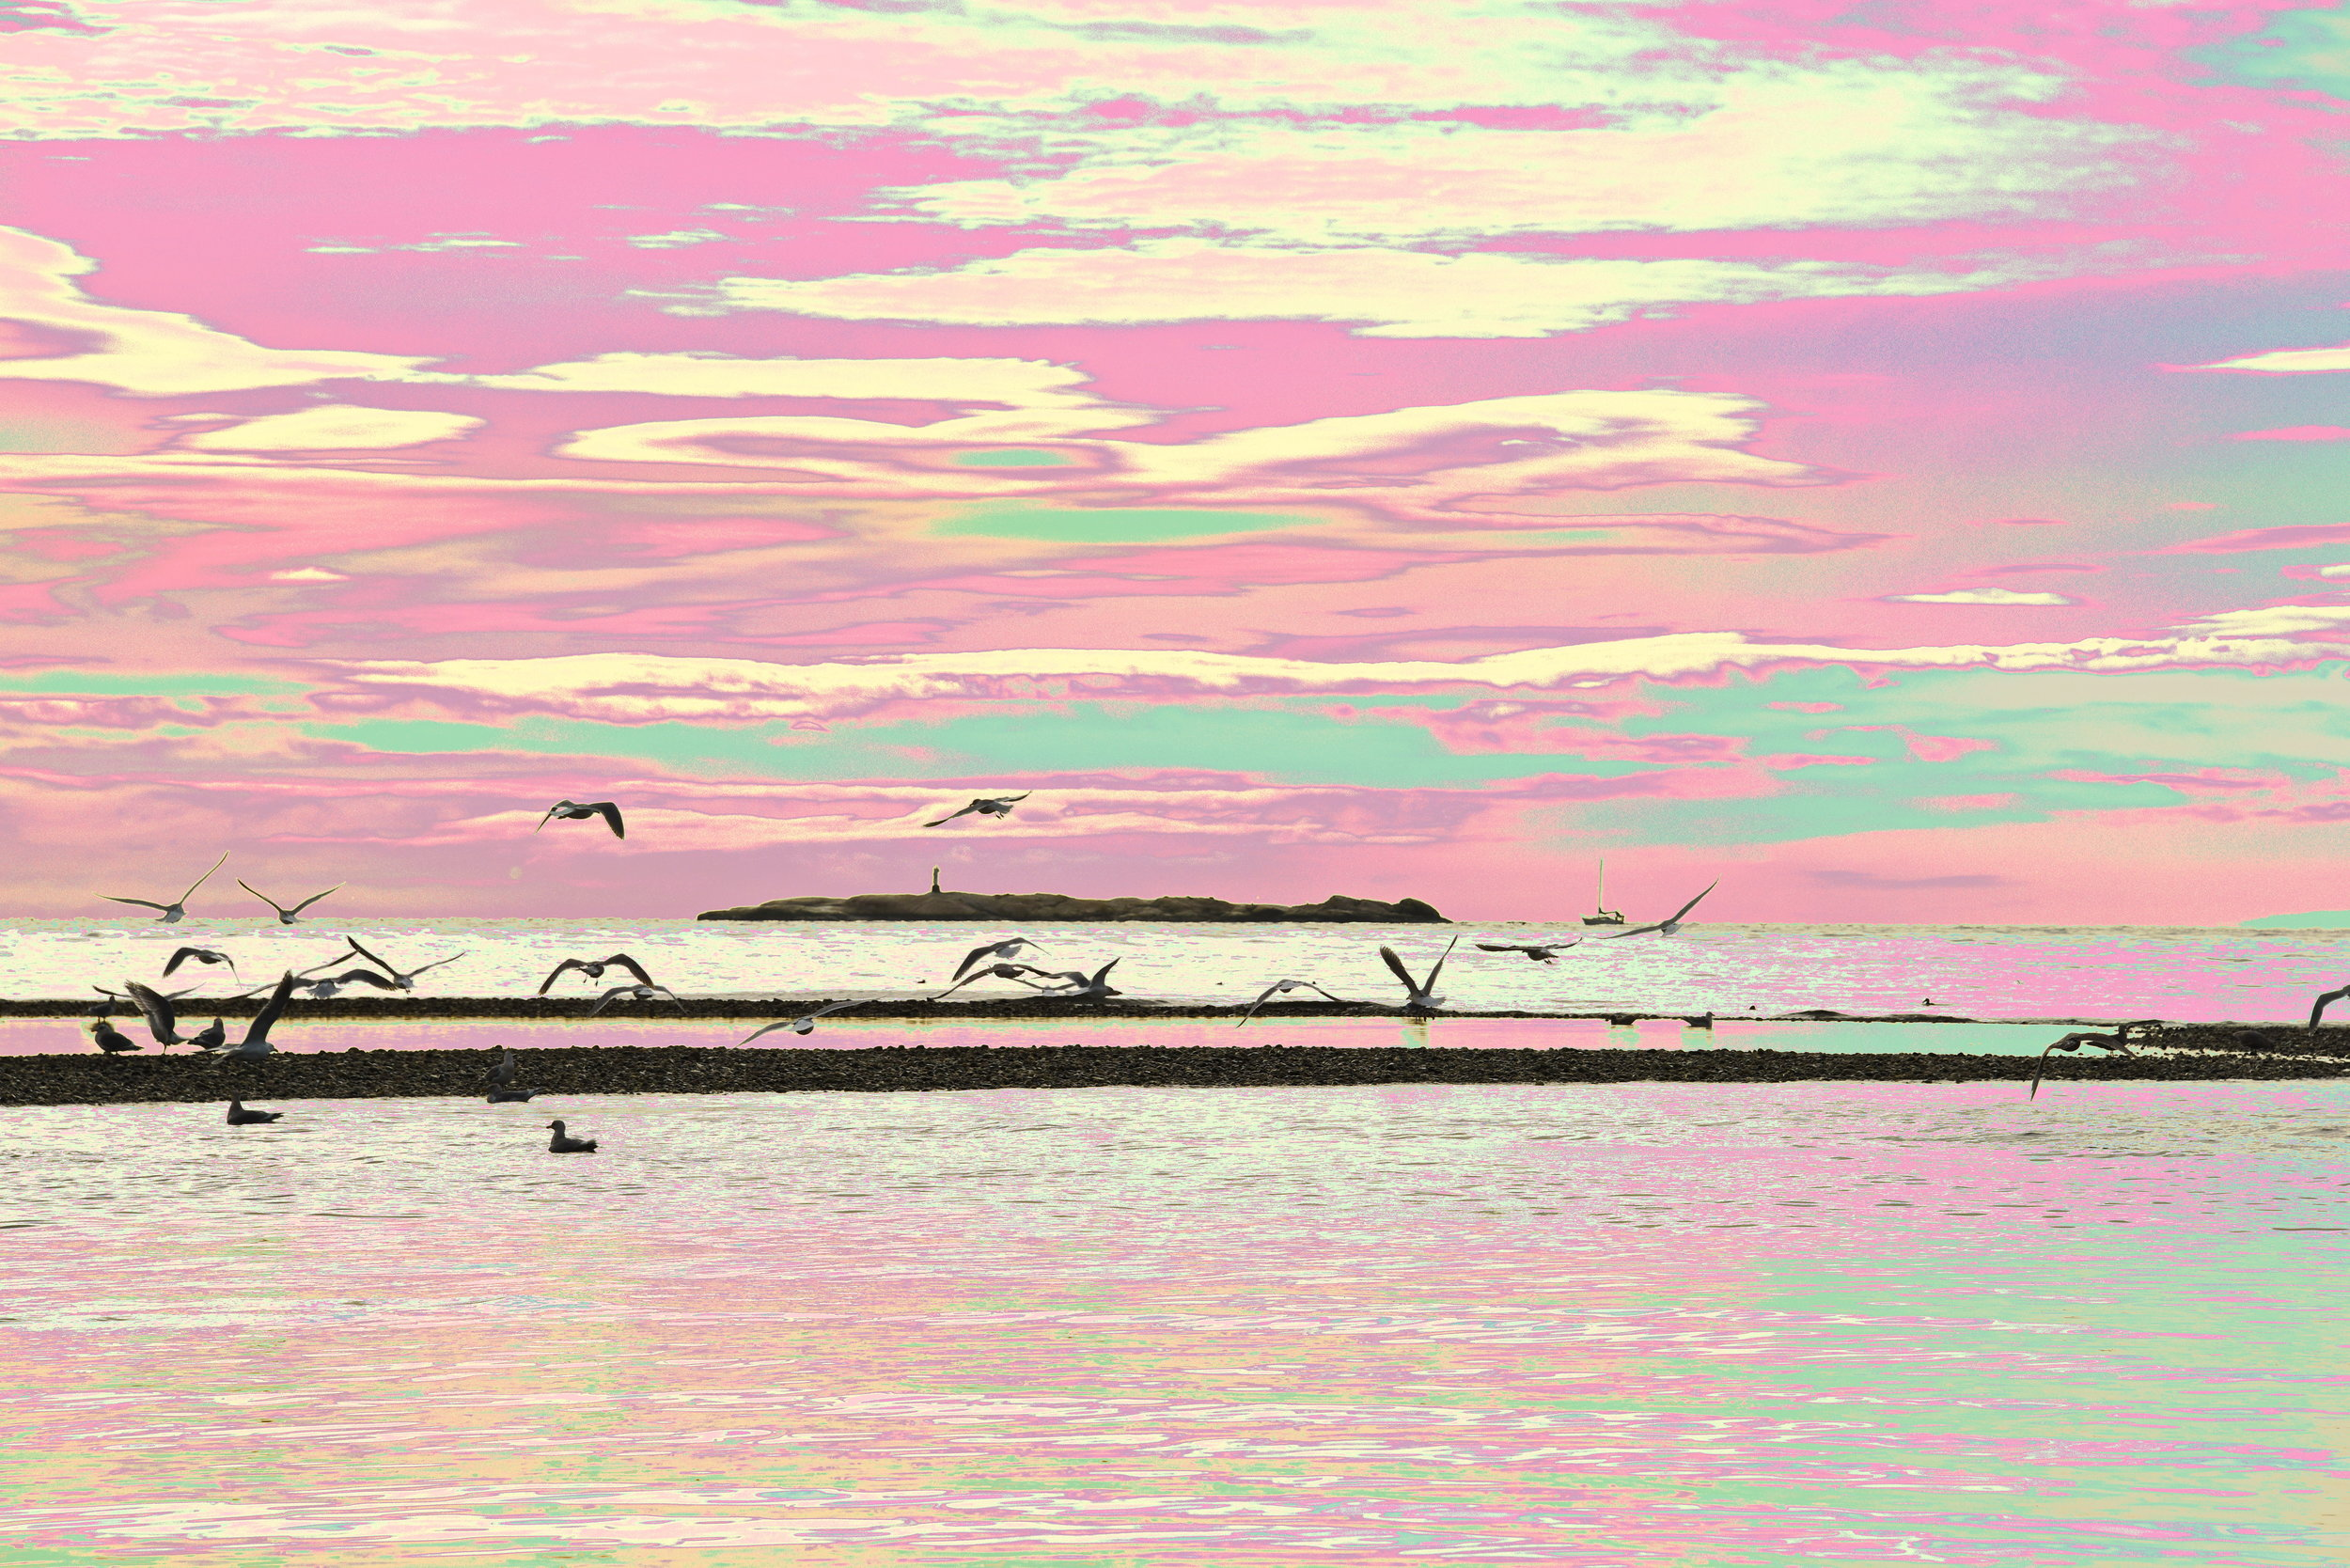 Davis Bay Morning 2    16 x 24 Canvas 225.00 16 x 24 HD Metal 300.00 12 x 18 HD Metal 200.00    also available in 5 x 7 Art Card